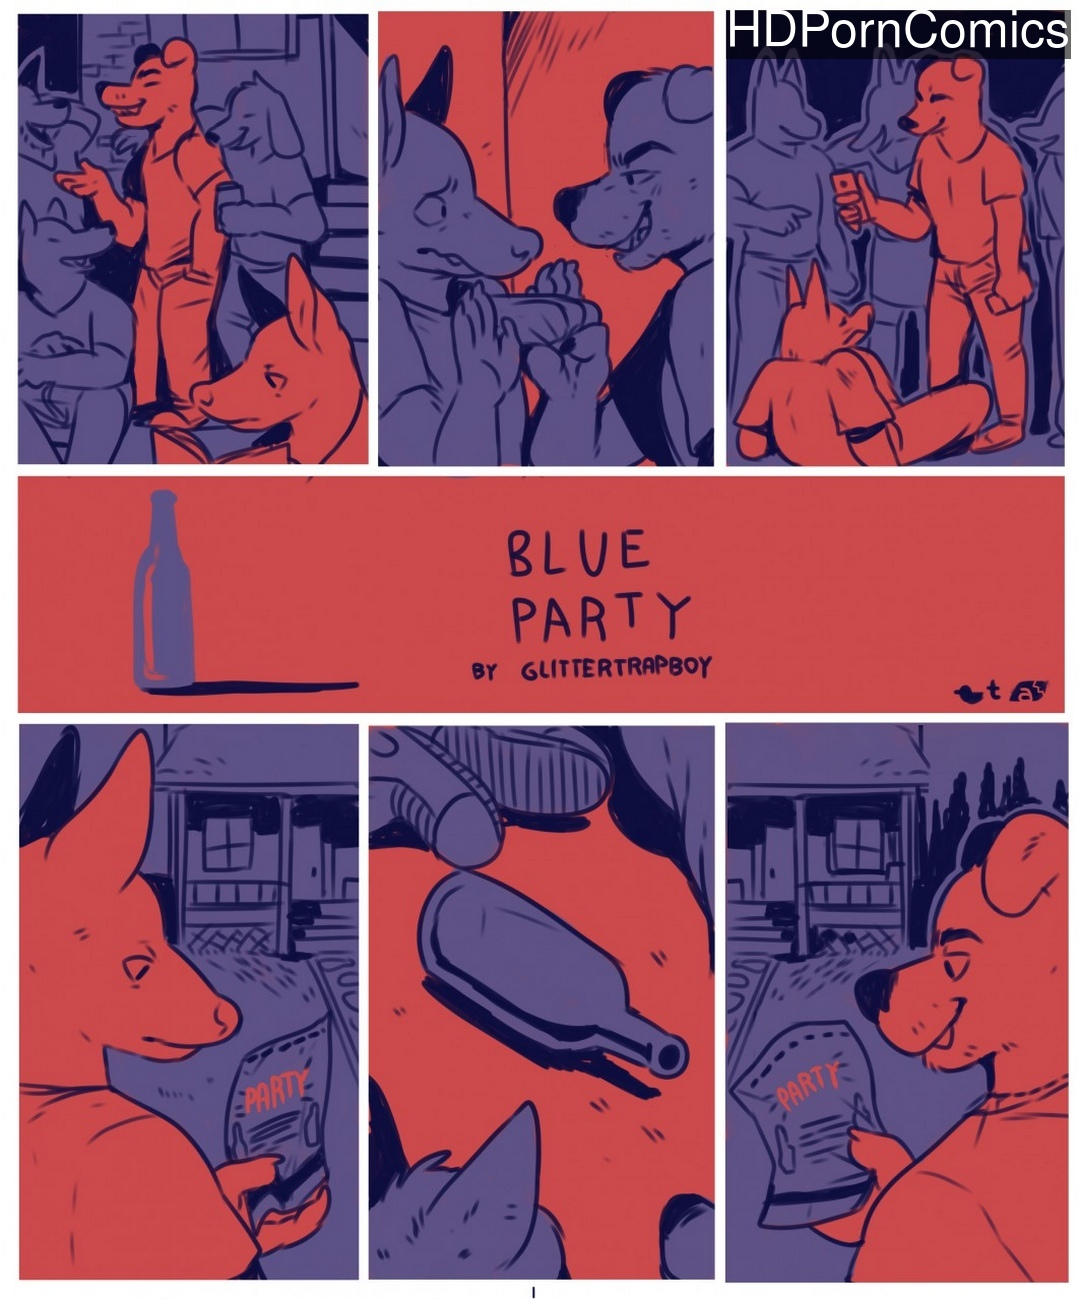 Blue-Party 1 free porn comics